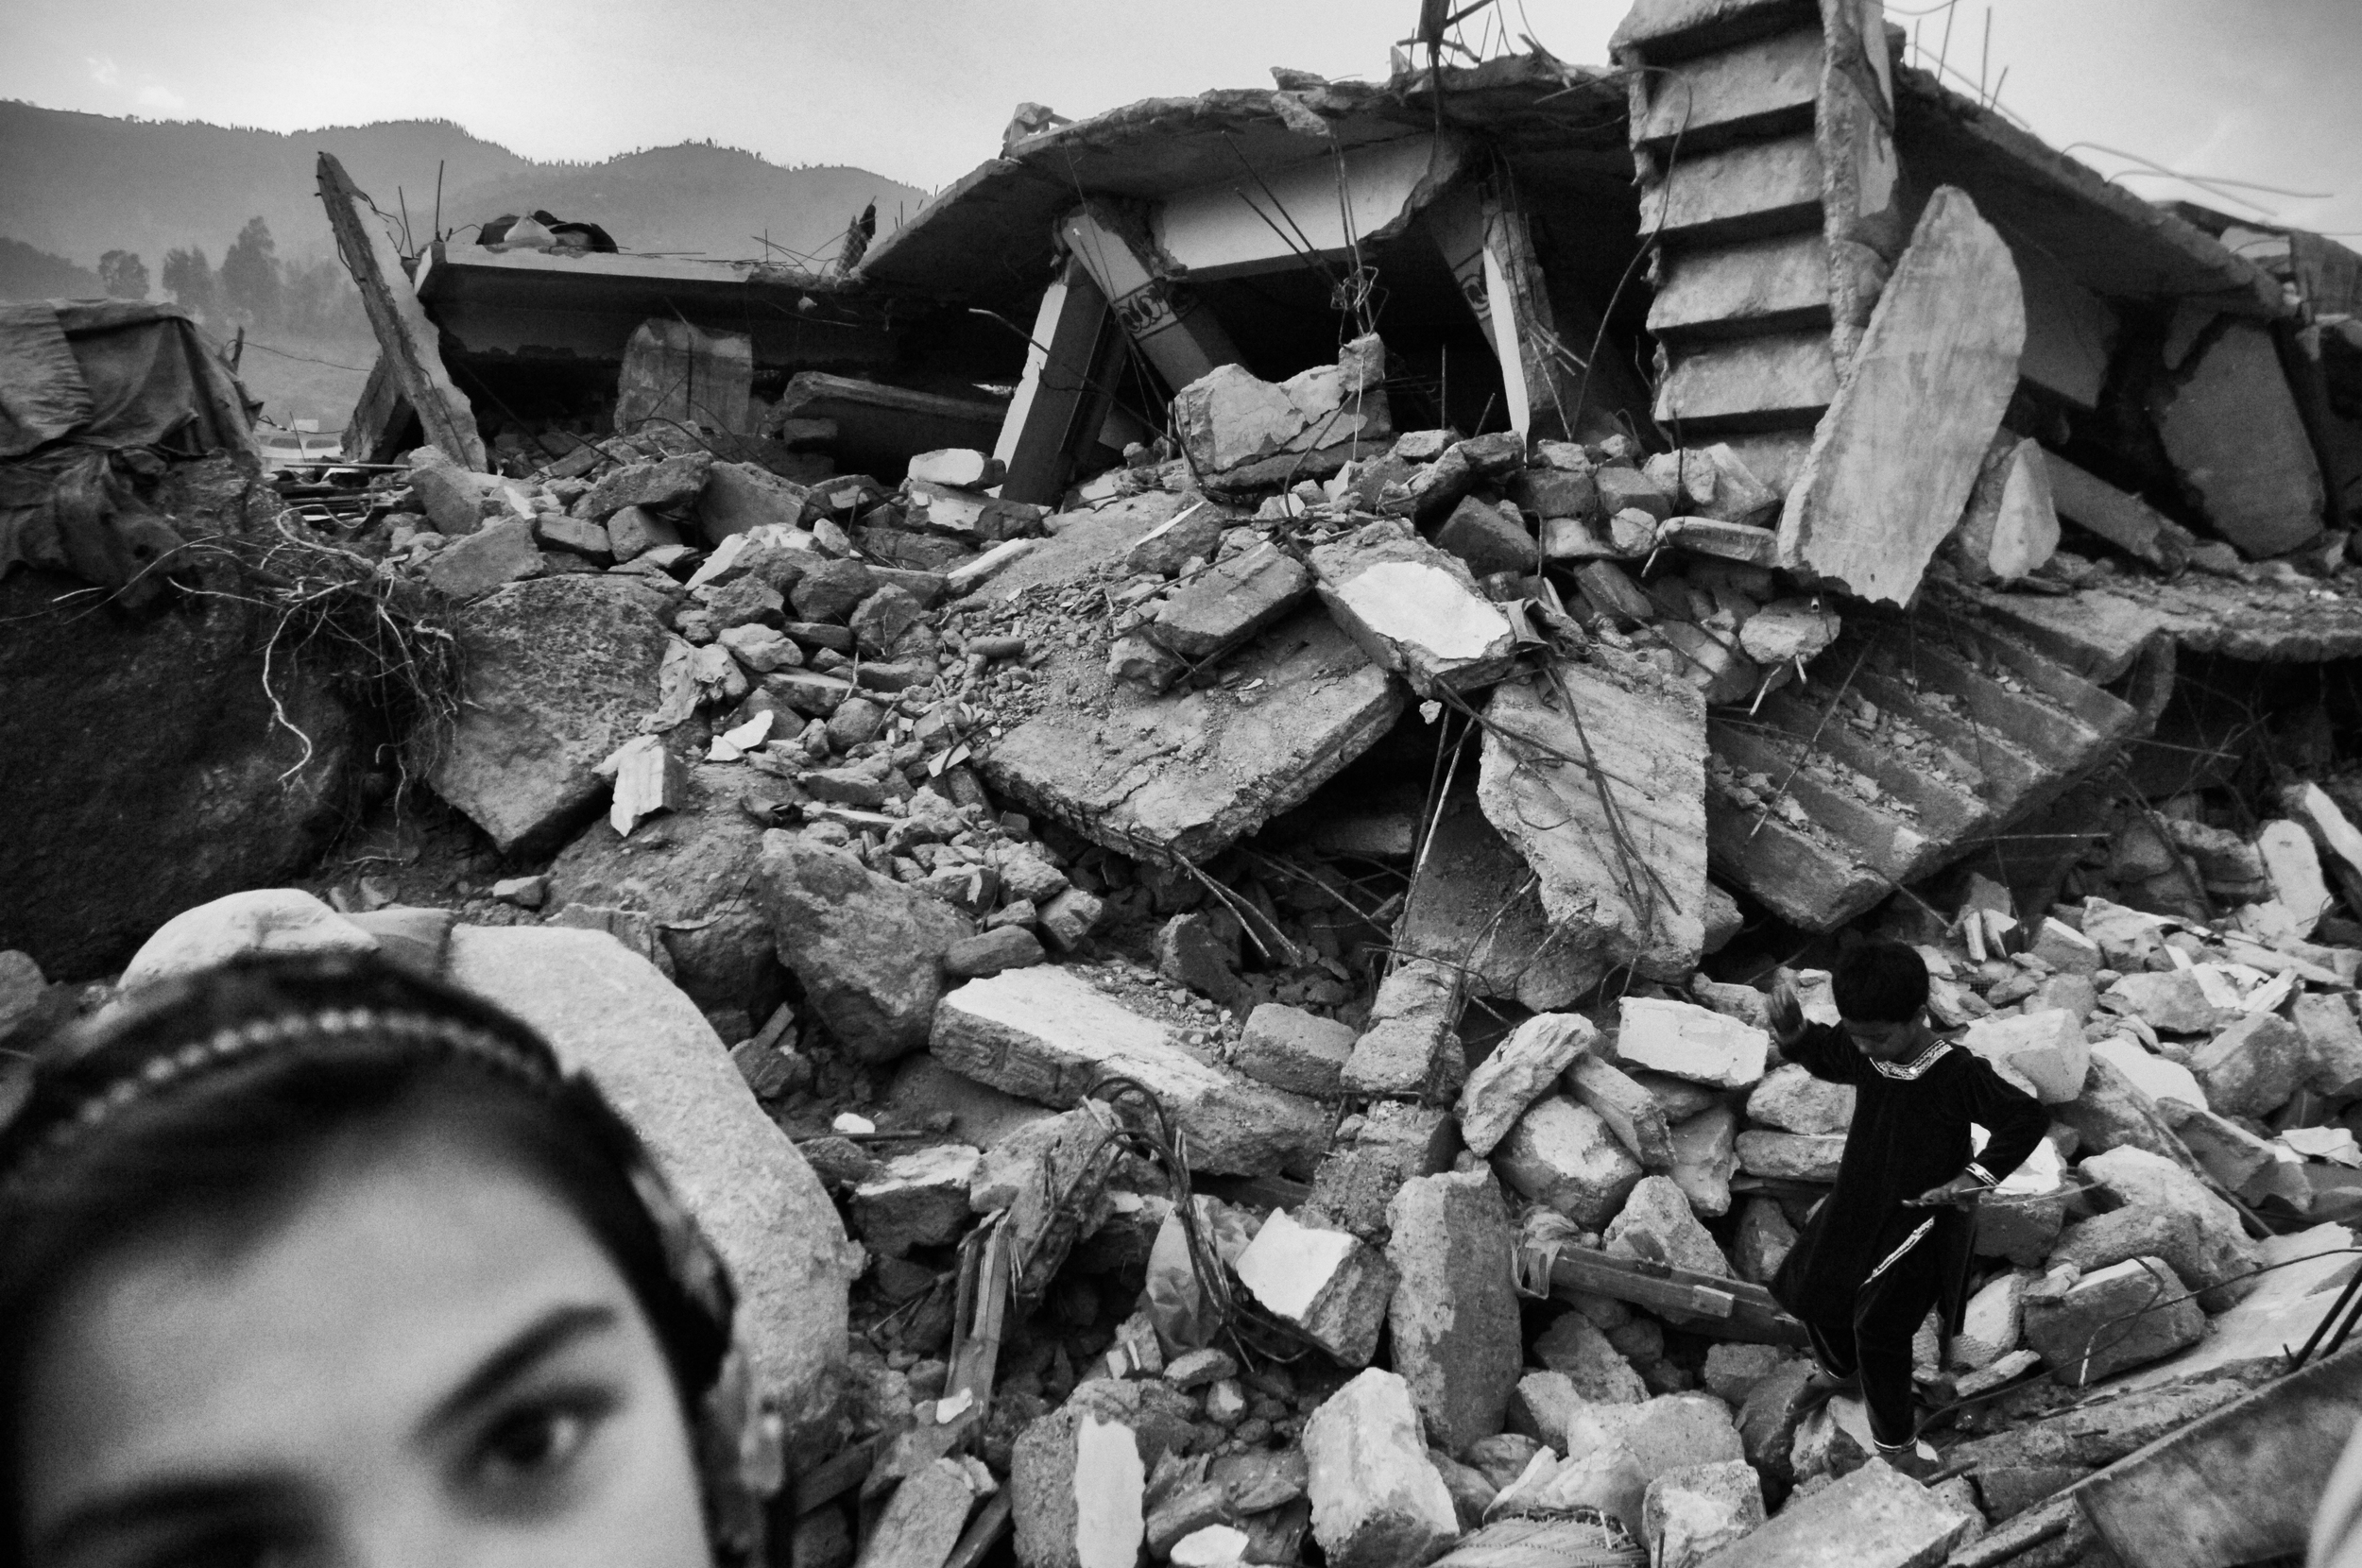 A young girl in the rubble during  Eid  al-Fitr in Balakot, NWFP, Pakistan, November 11, 2005. (Photo / Mark Pearson) The massive October earthquake in Kashmir affected one of the highest and most remote places on earth. Difficult terrain slowed the relief effort and the largest scale humanitarian air operations since the Berlin blockade began.